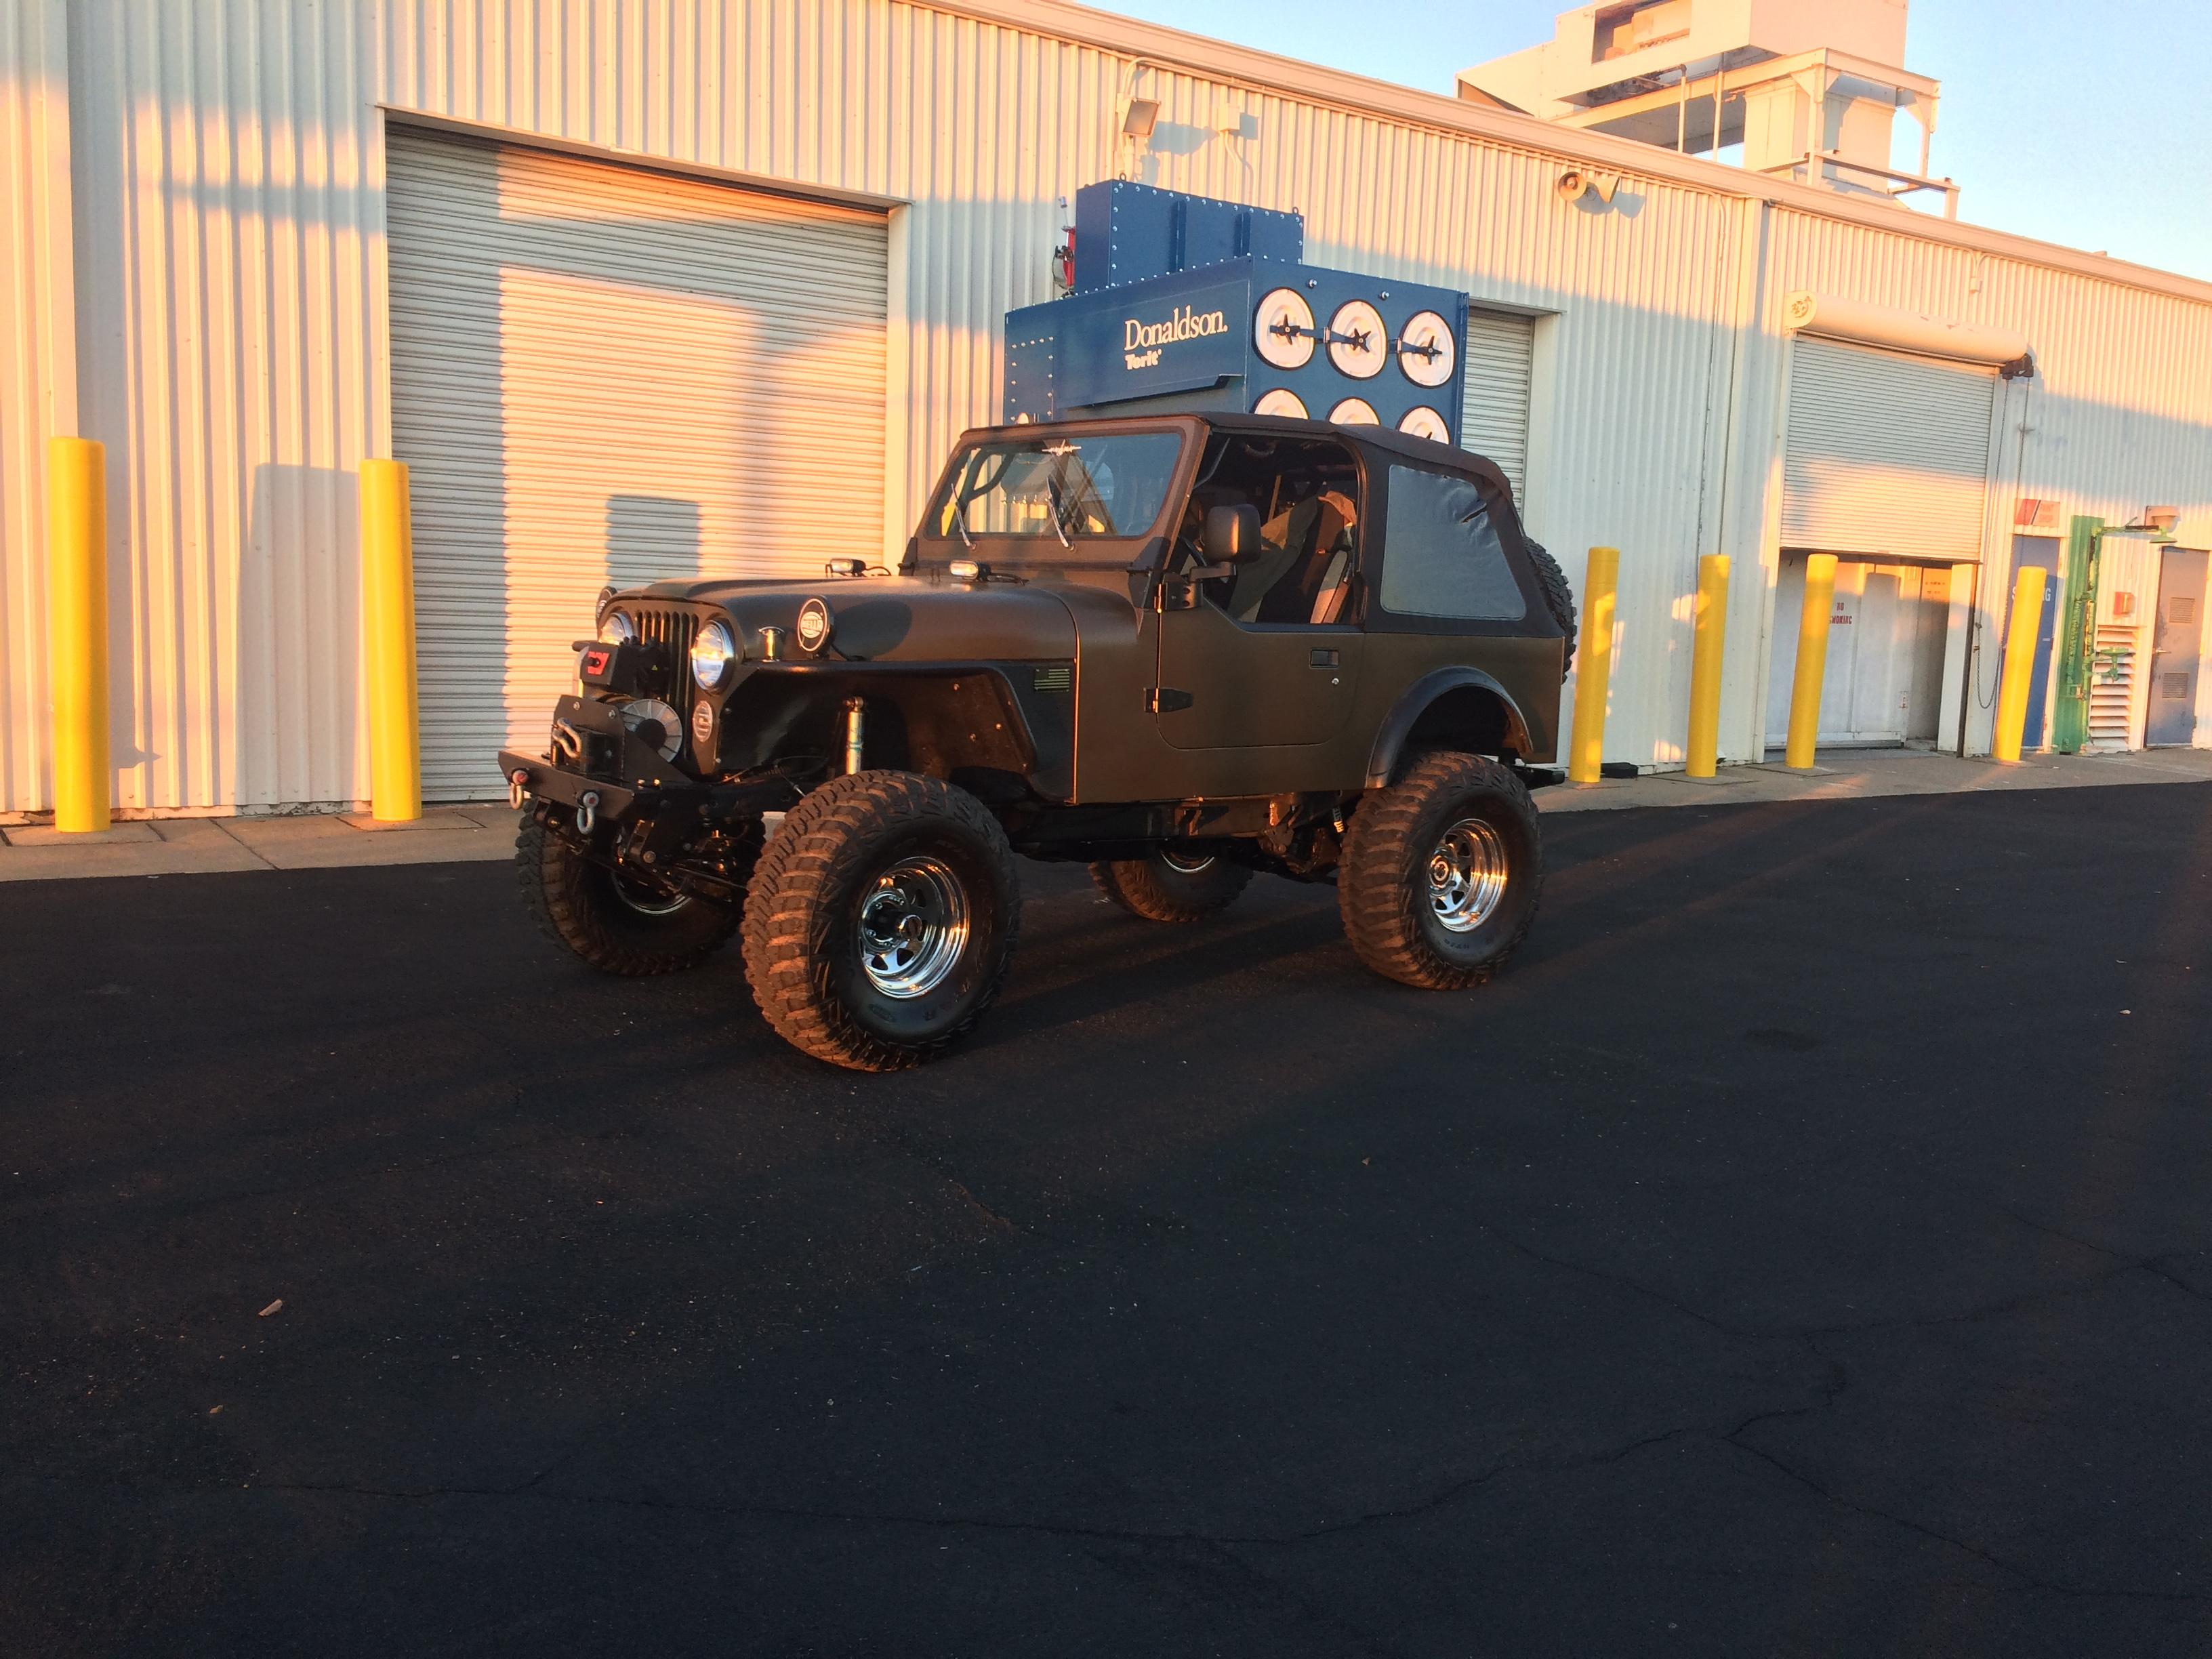 The jeep as it is now